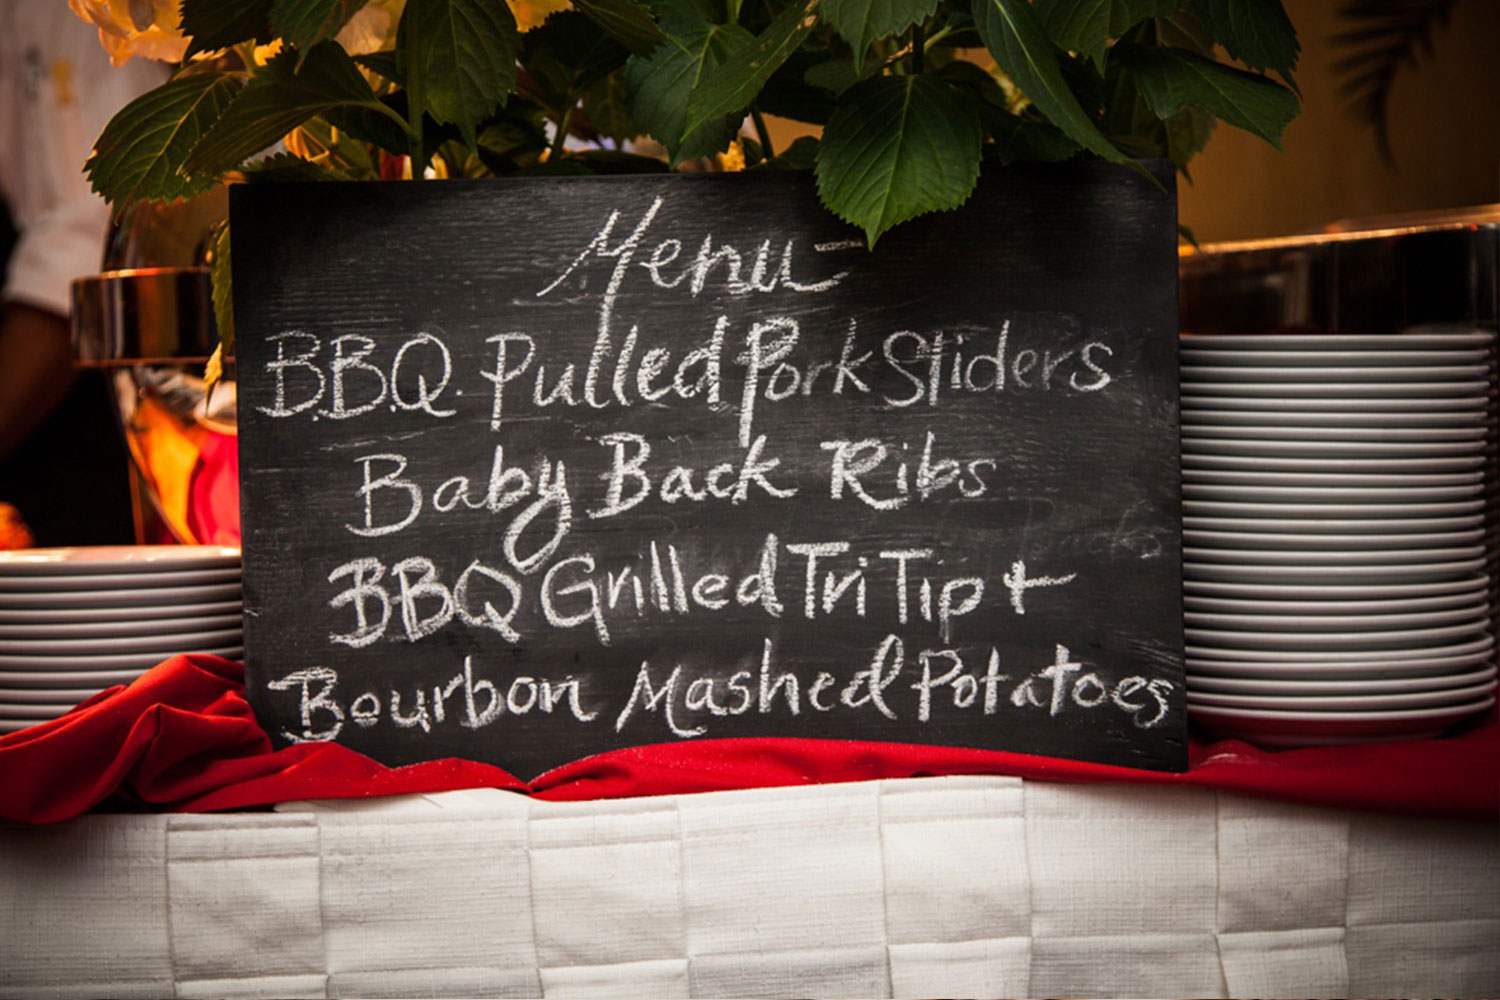 toast-custom-menu-bbq-potatoes-catering-sliders-food-10twelve.jpg